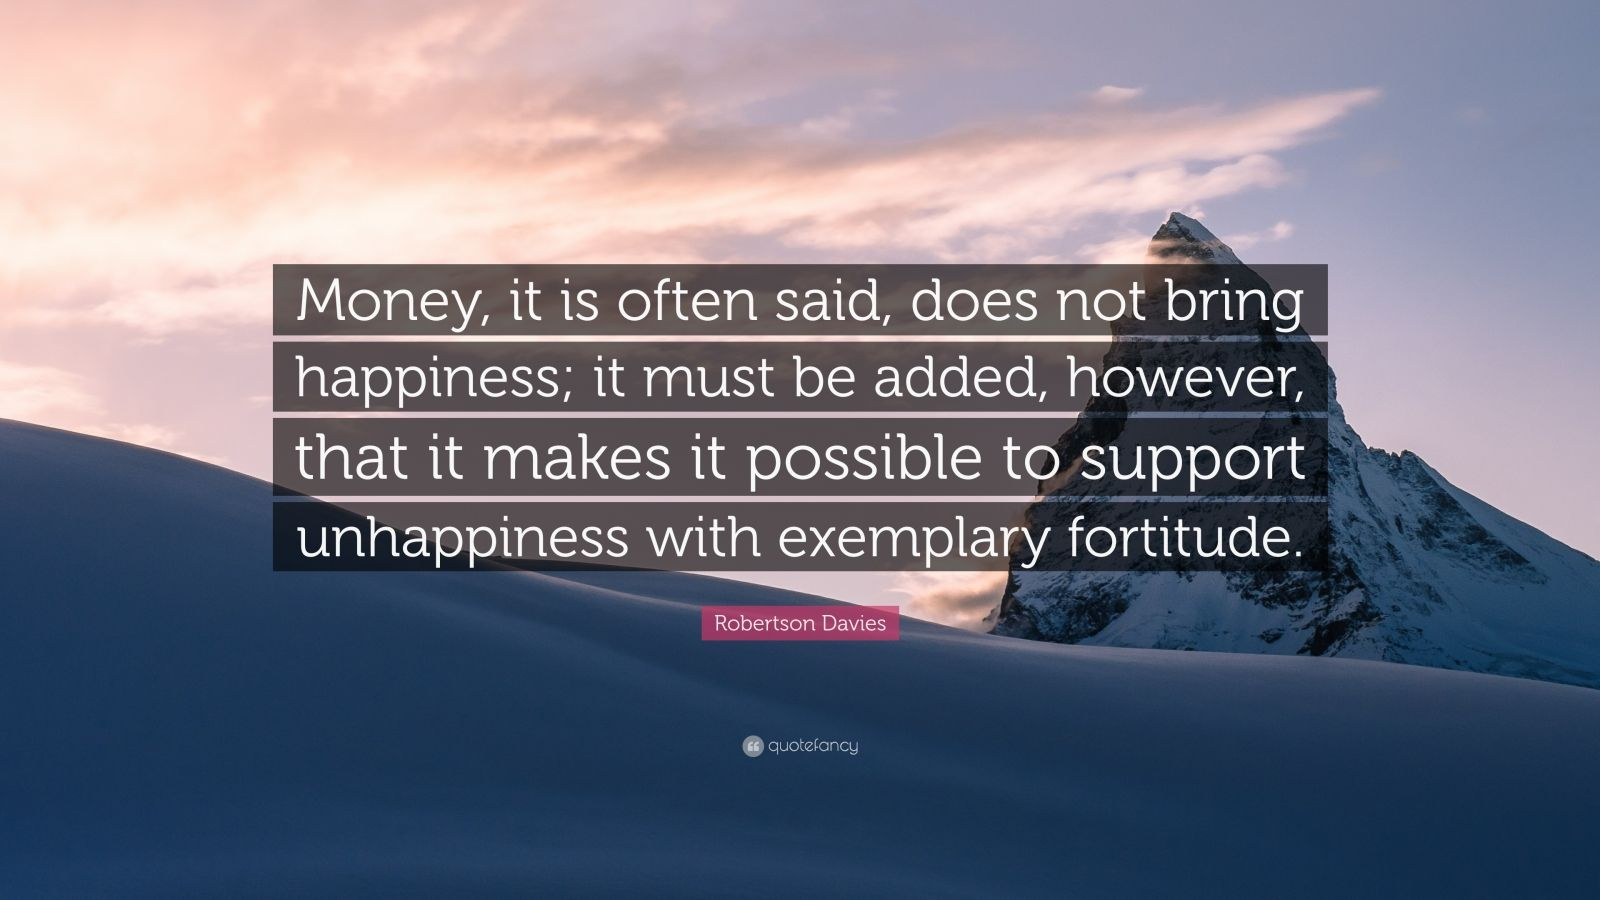 """Robertson Davies Quote: """"Money, it is often said, does not bring happiness; it must be added, however, that it makes it possible to support unhappiness with exemplary fortitude."""""""